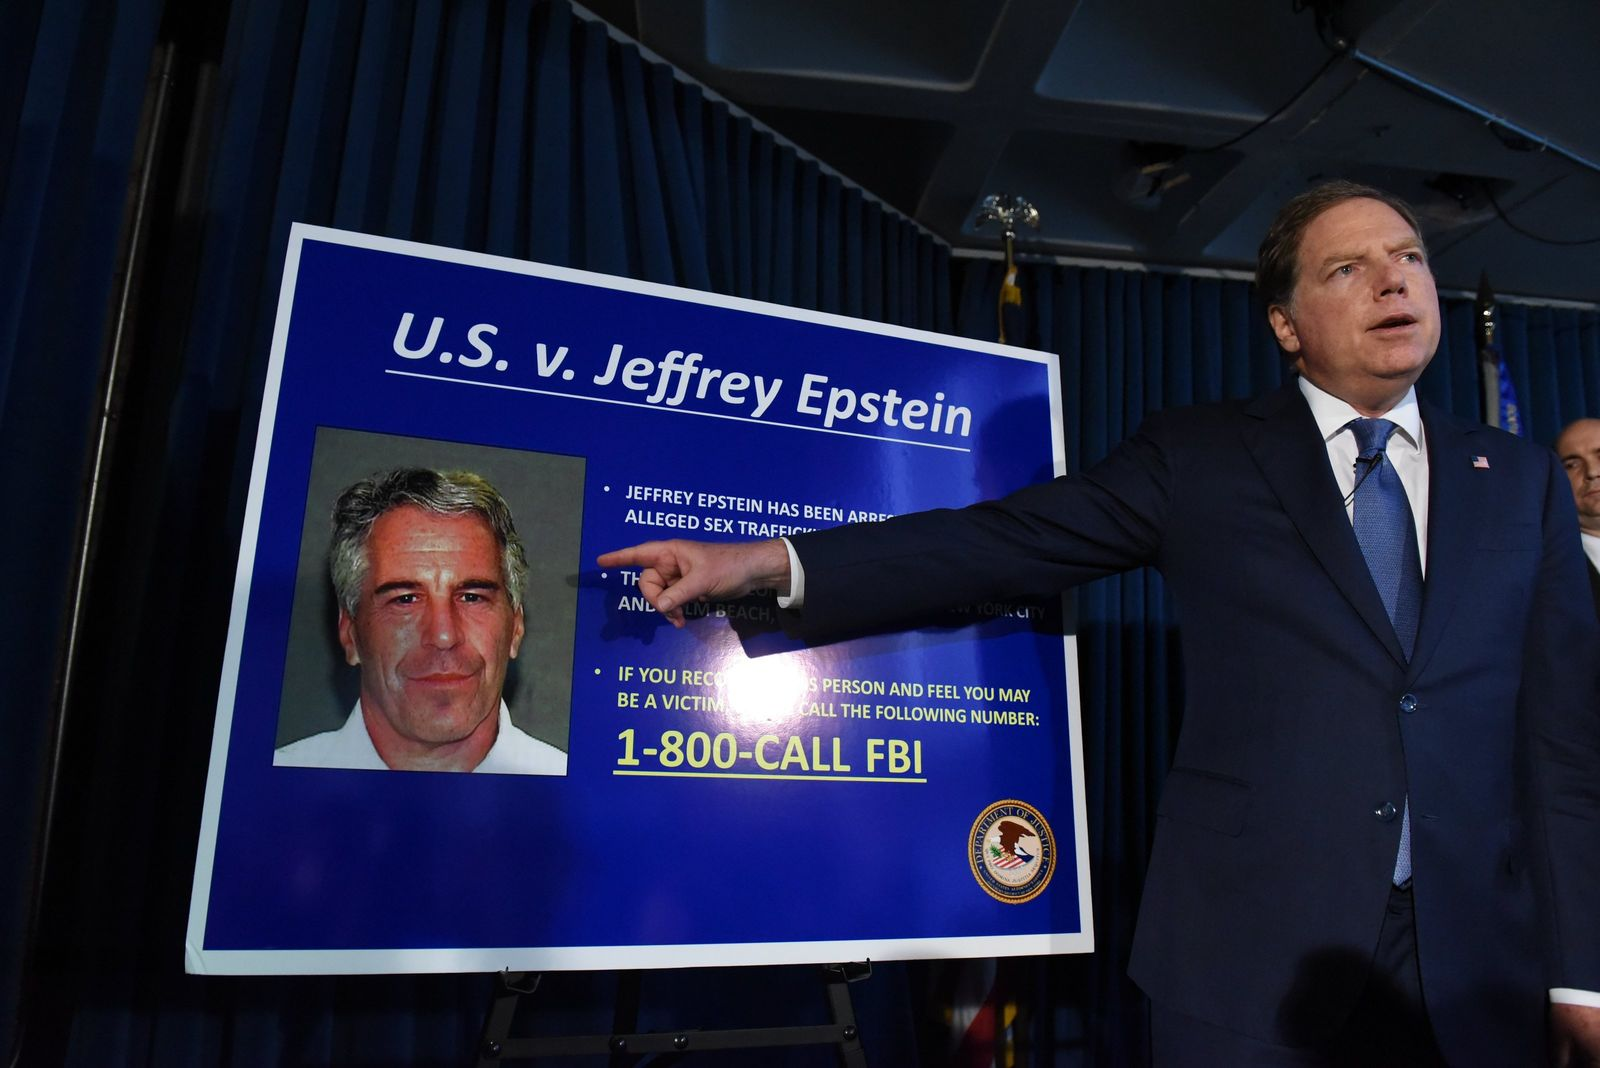 US Attorney for the Southern District of New York Geoffrey Berman announces charges against Jeffery Epstein on July 8, 2019, in New York City.